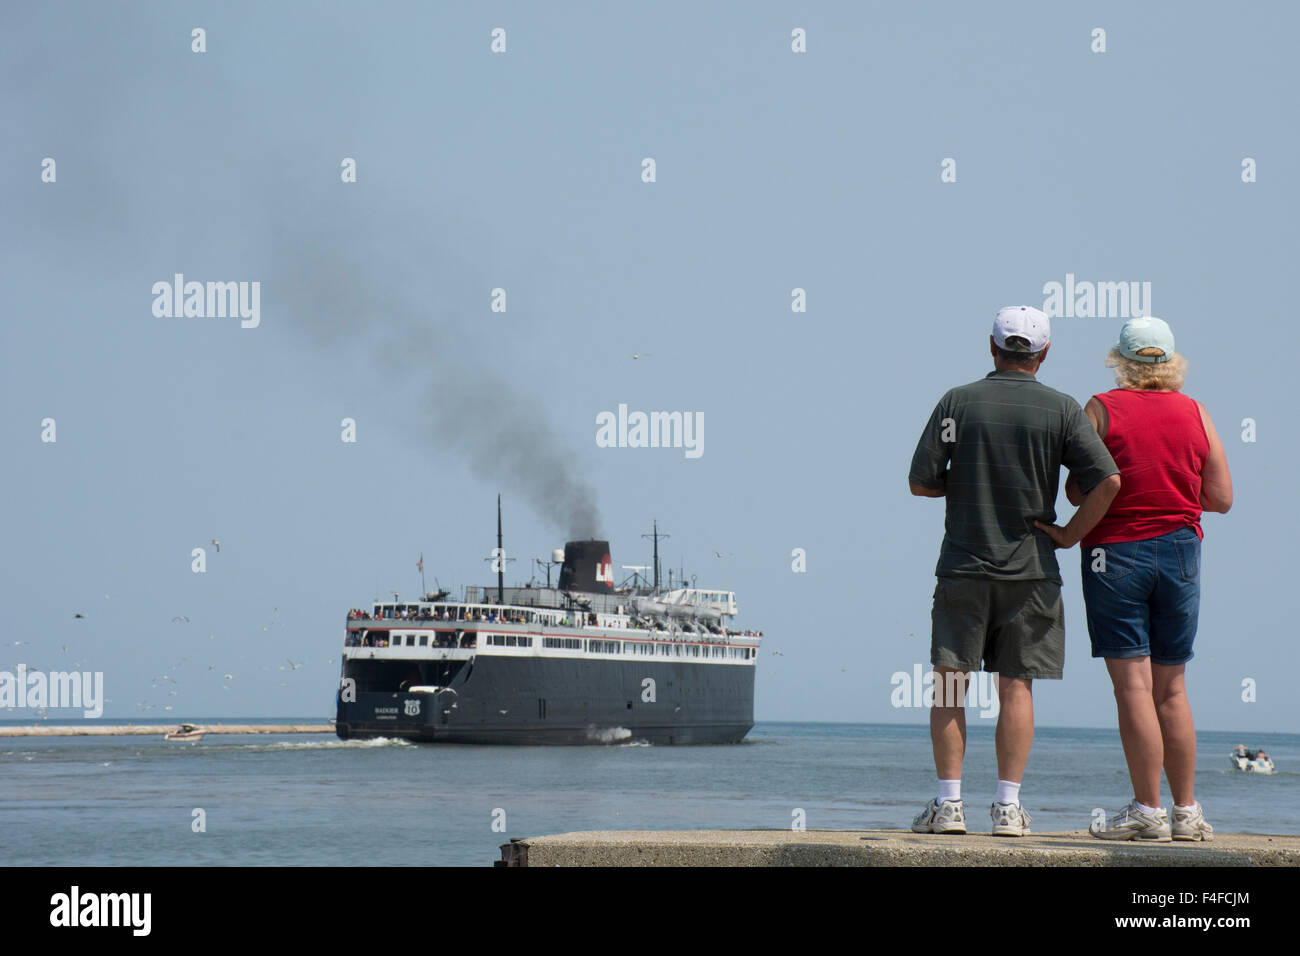 Wisconsin, Lake Michigan, Manitowoc. People watching S.S. Badger, only coal-fired passenger steamship in the US, - Stock Image